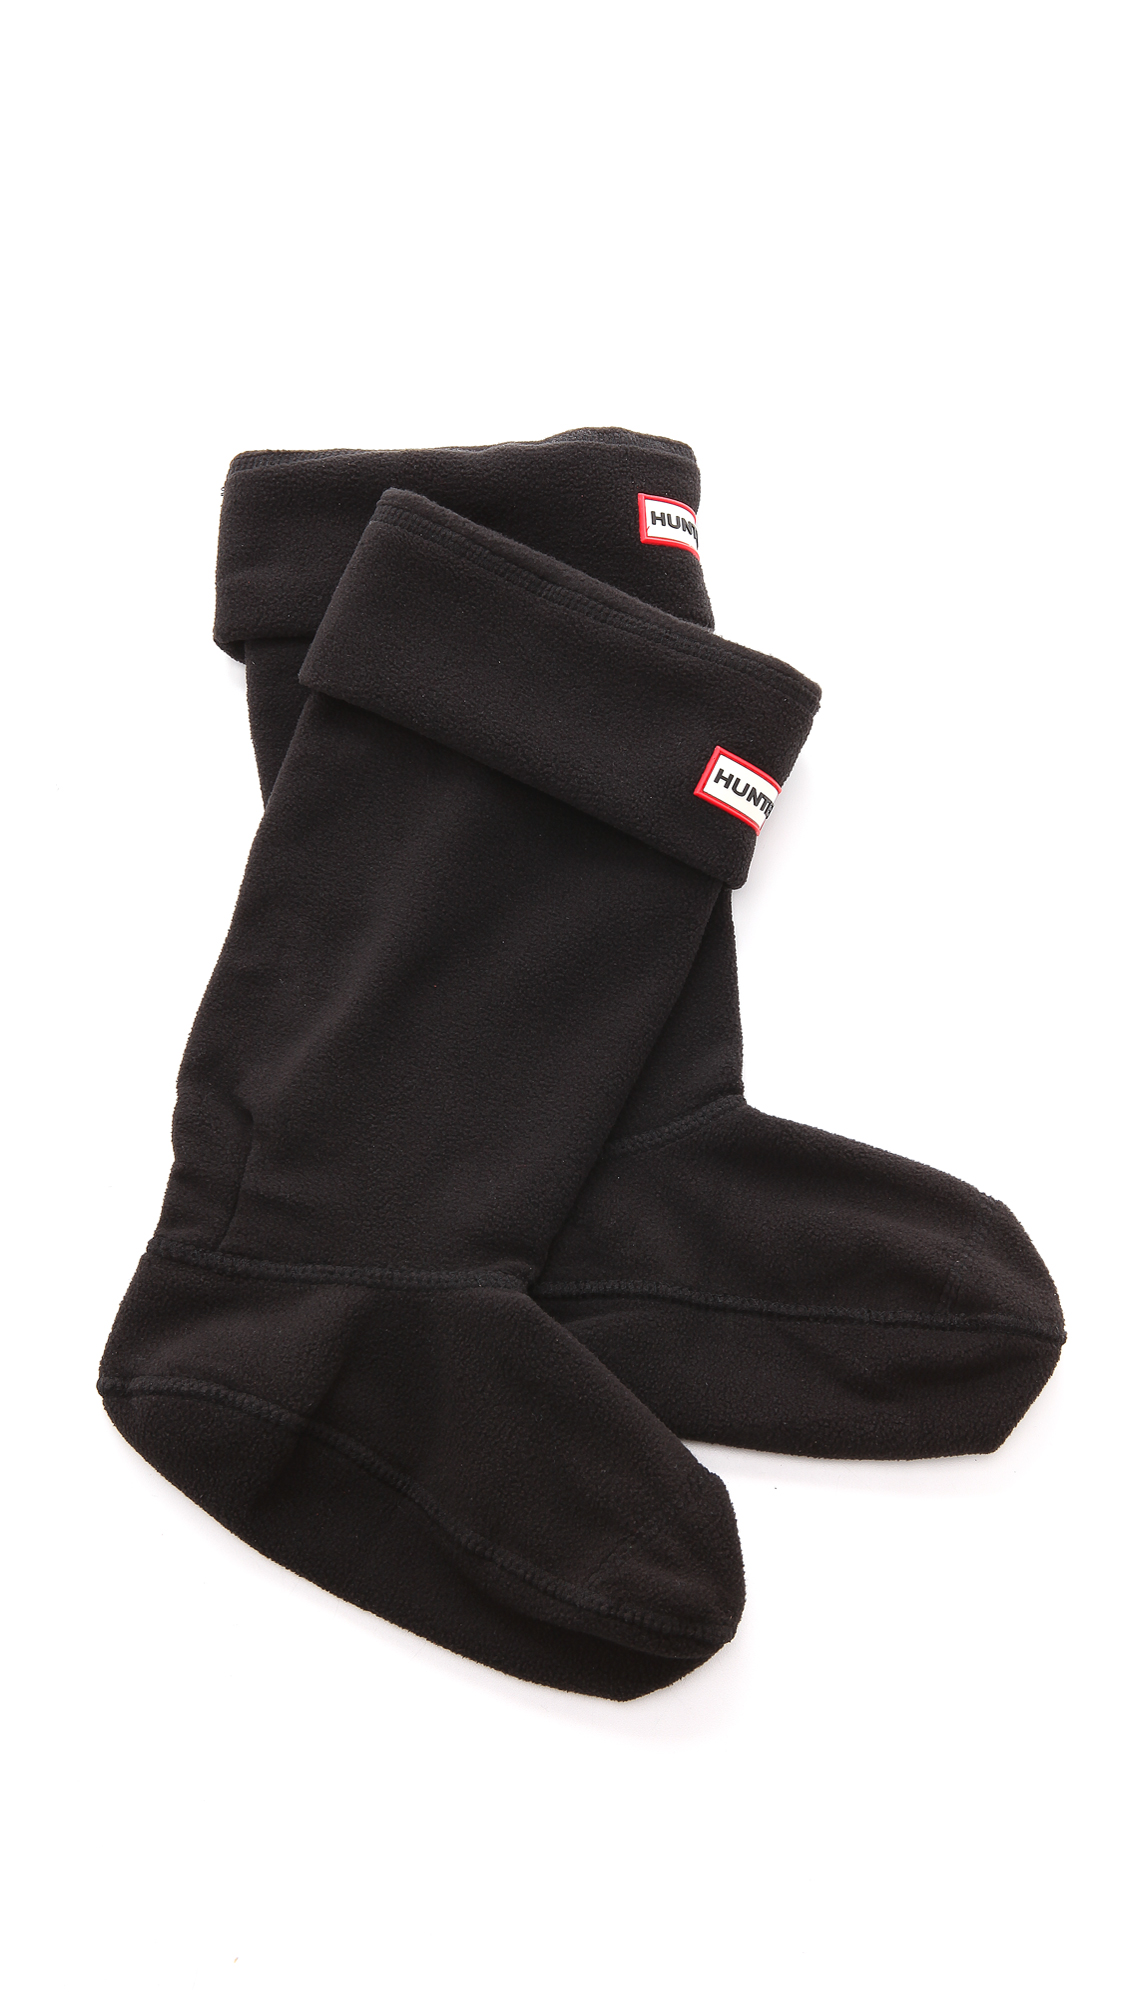 Hunter Boots Boot Socks - Black at Shopbop